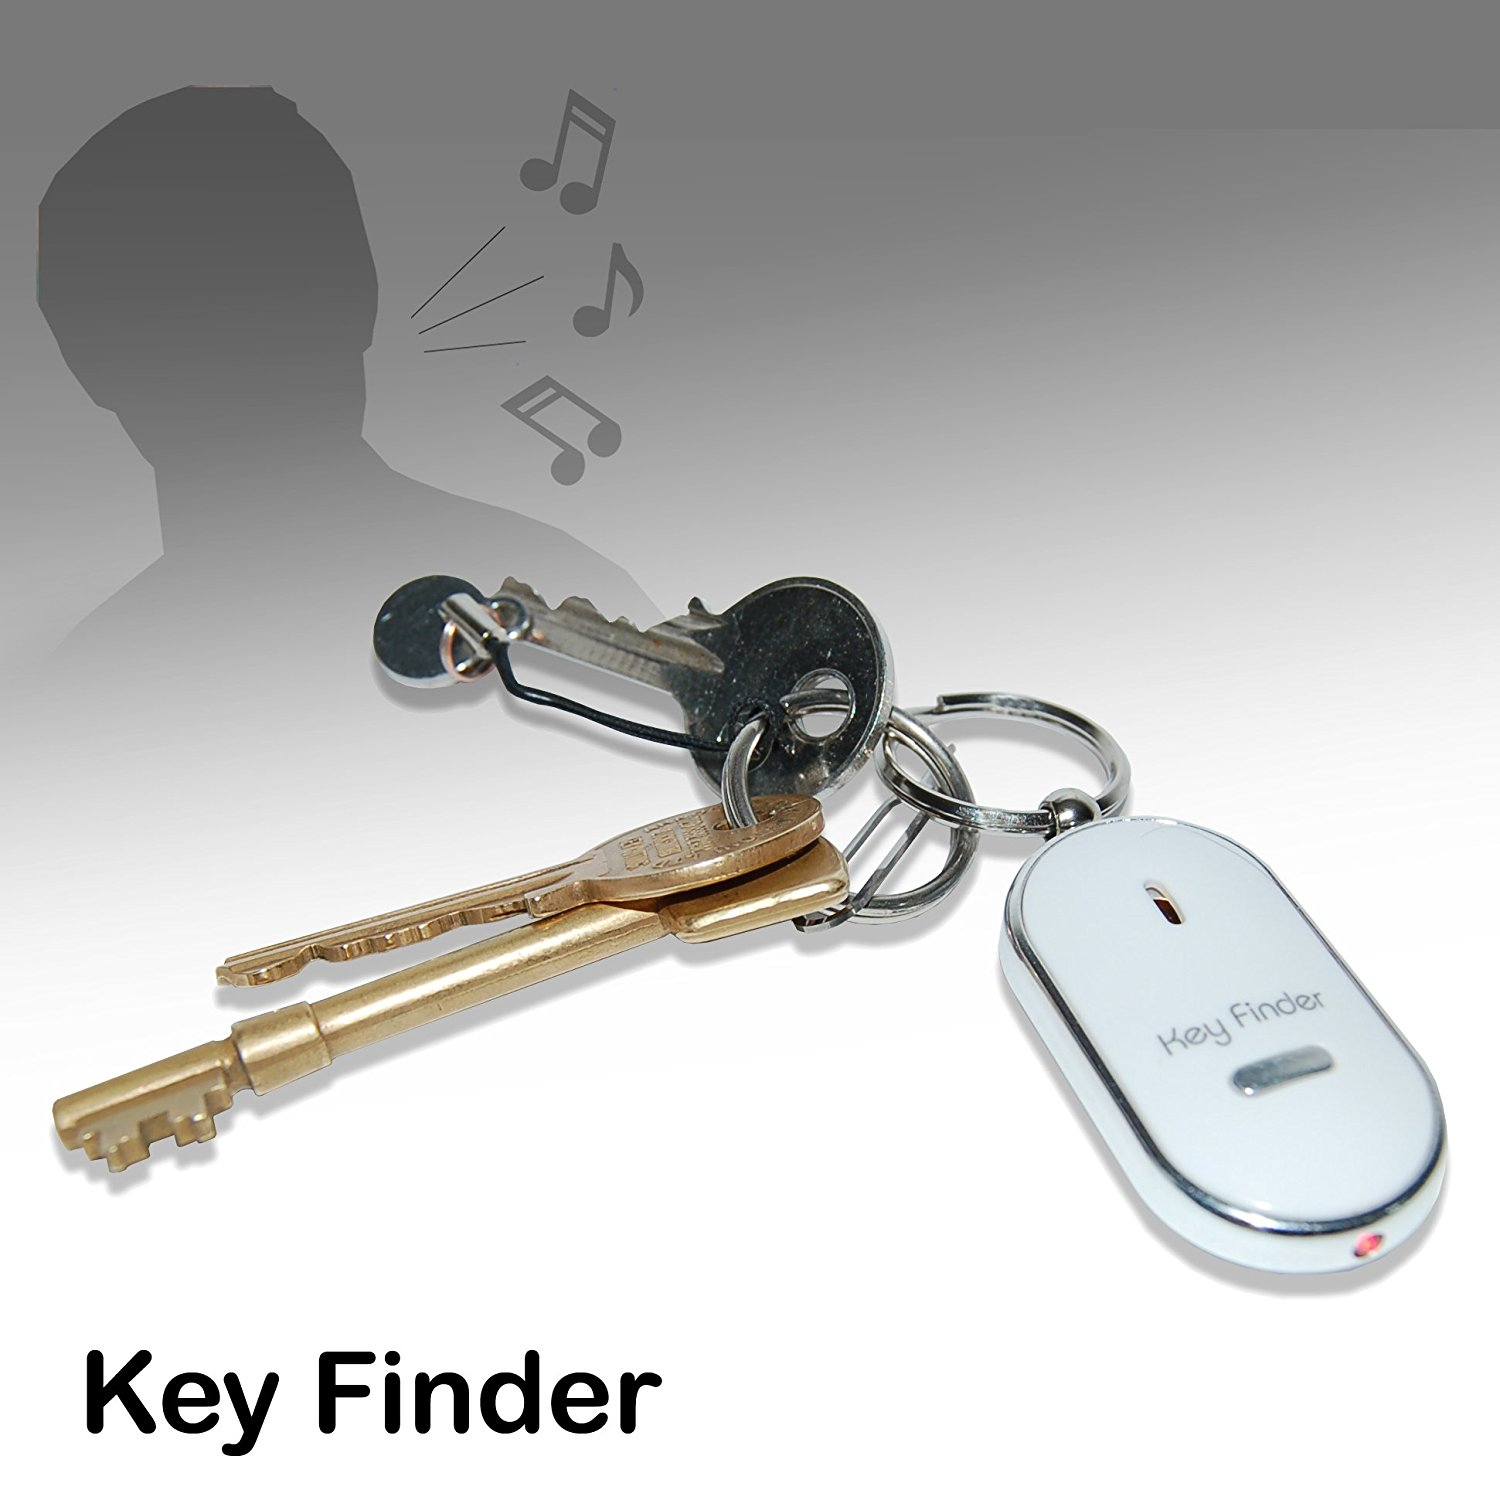 Amazon.com: Thumbs Up! Whistle Key Finder: Home & Kitchen